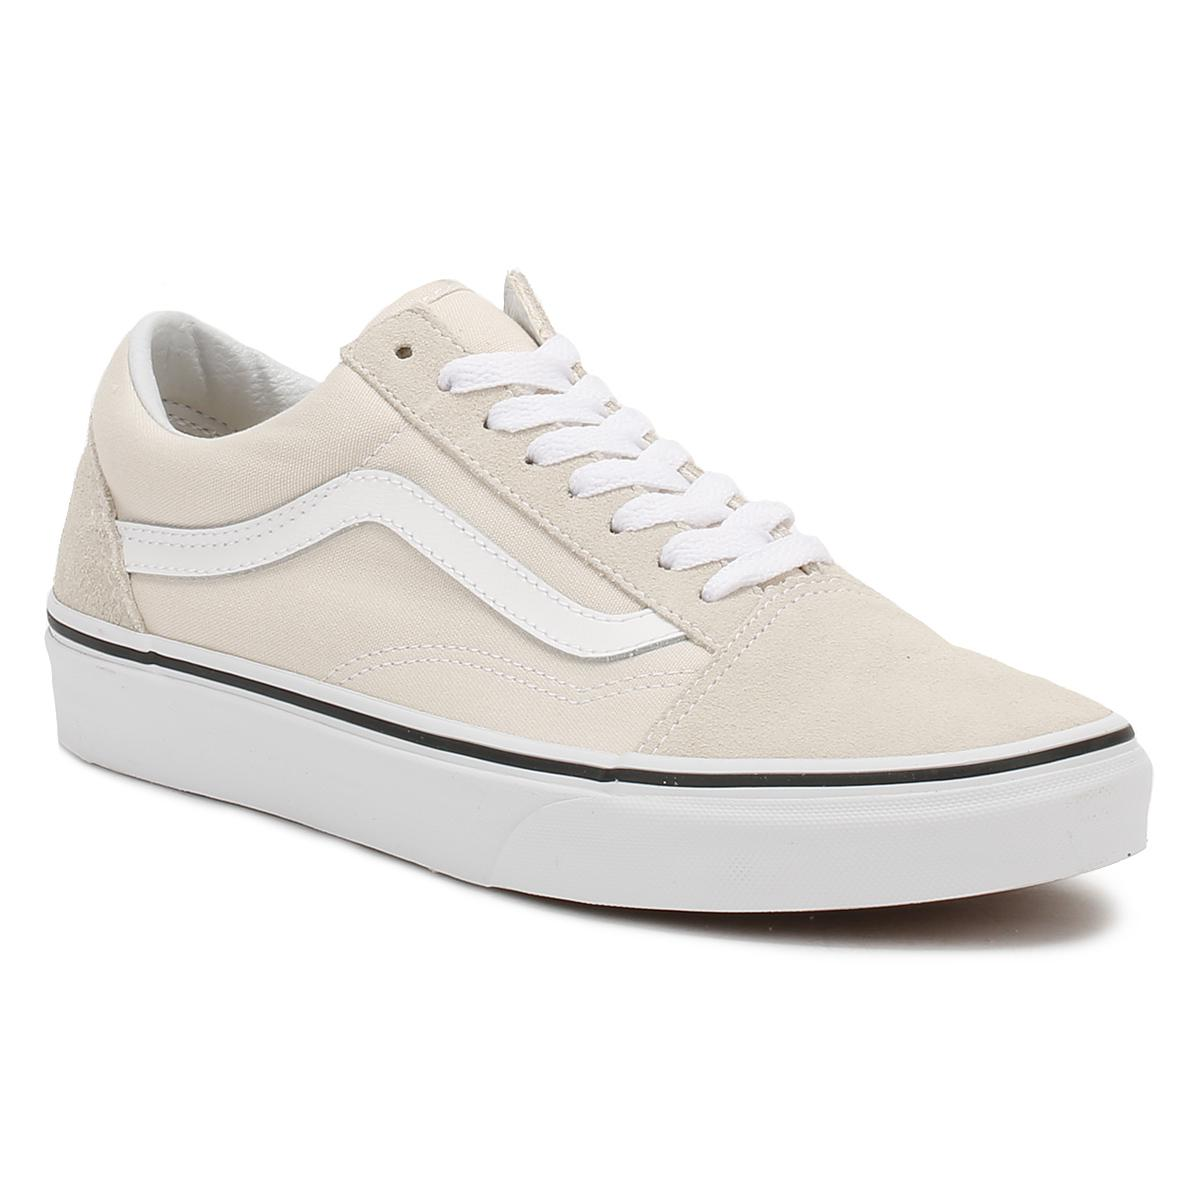 cdf7a5a90bb1 Vans Beige Suede Old Skool Trainers in White - Lyst